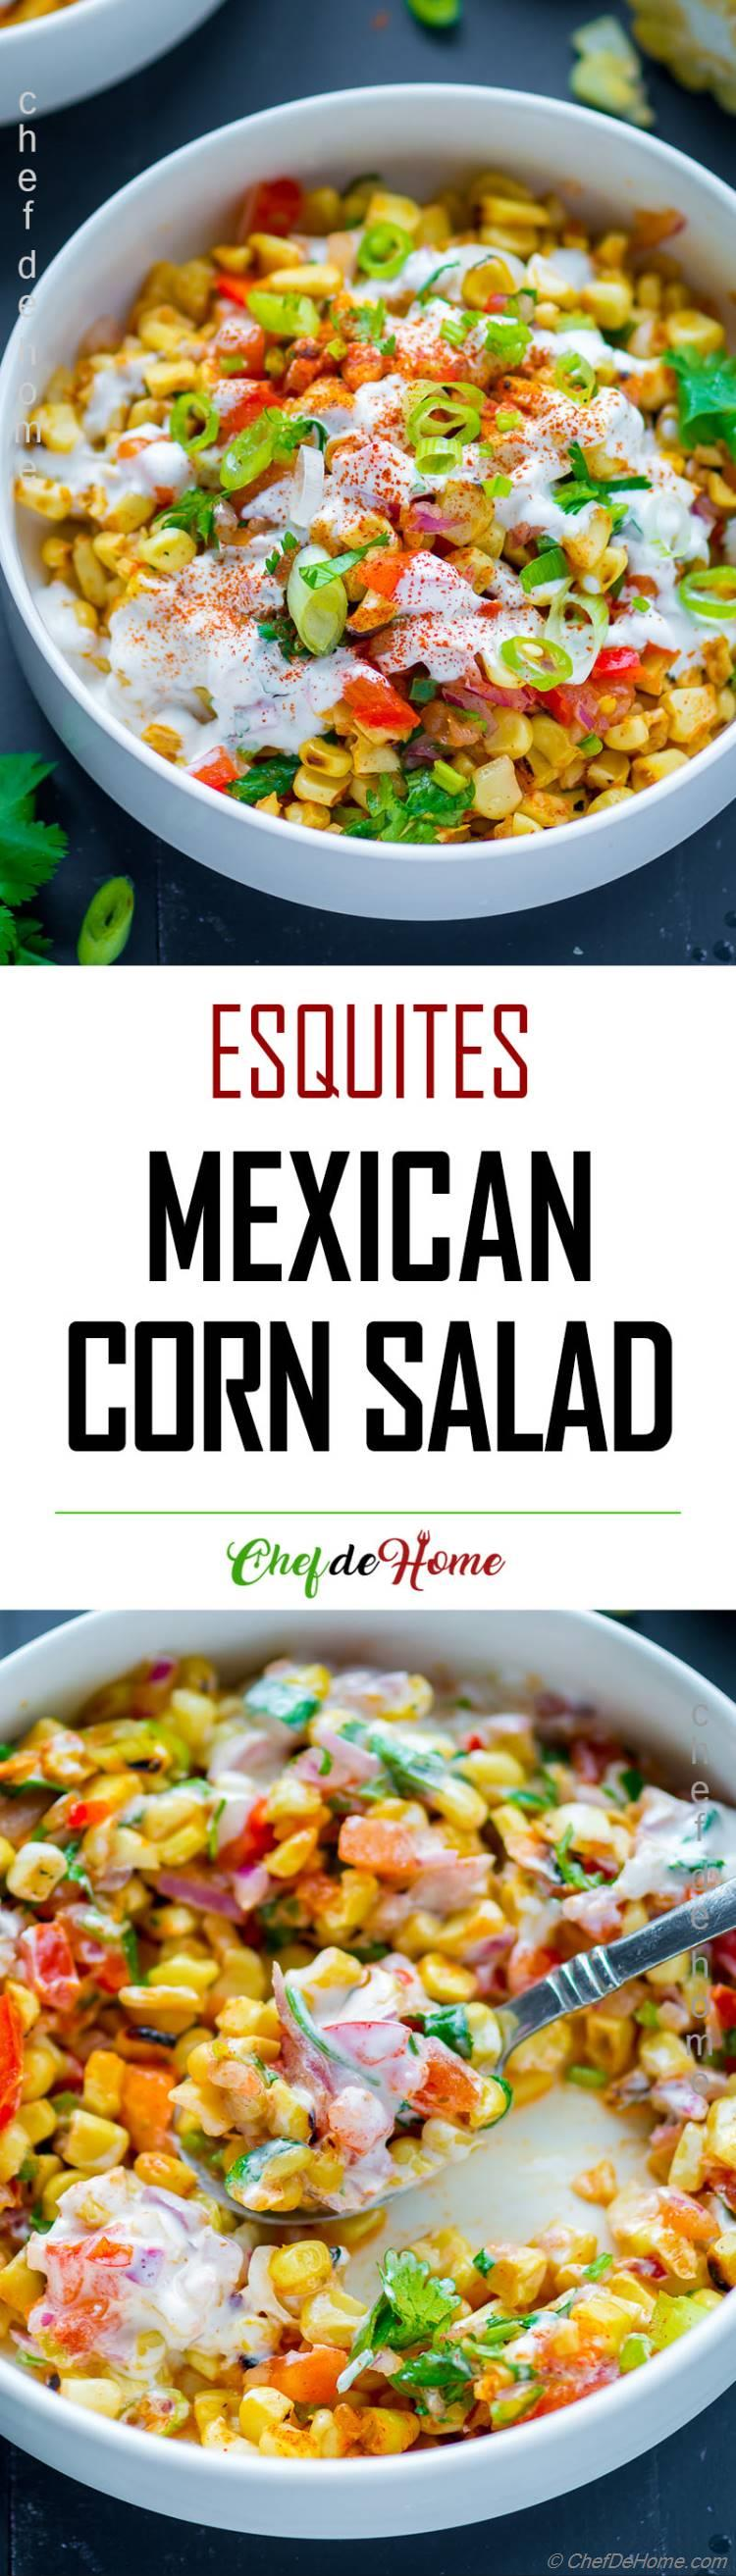 Mexican Corn Salad Esquites Recipe